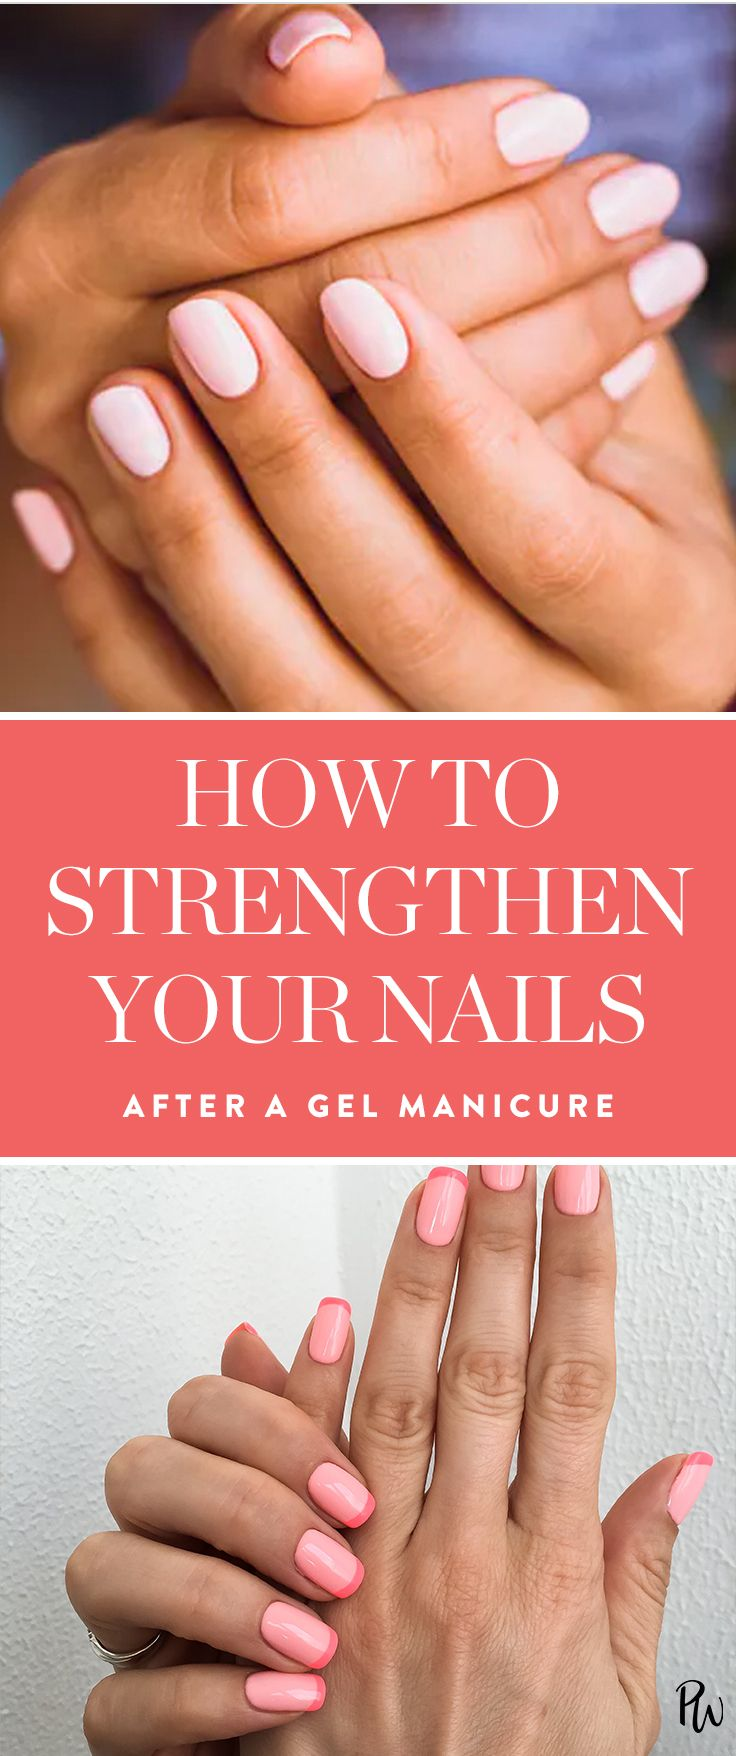 how to strengthen nails after gel nails photo - 2